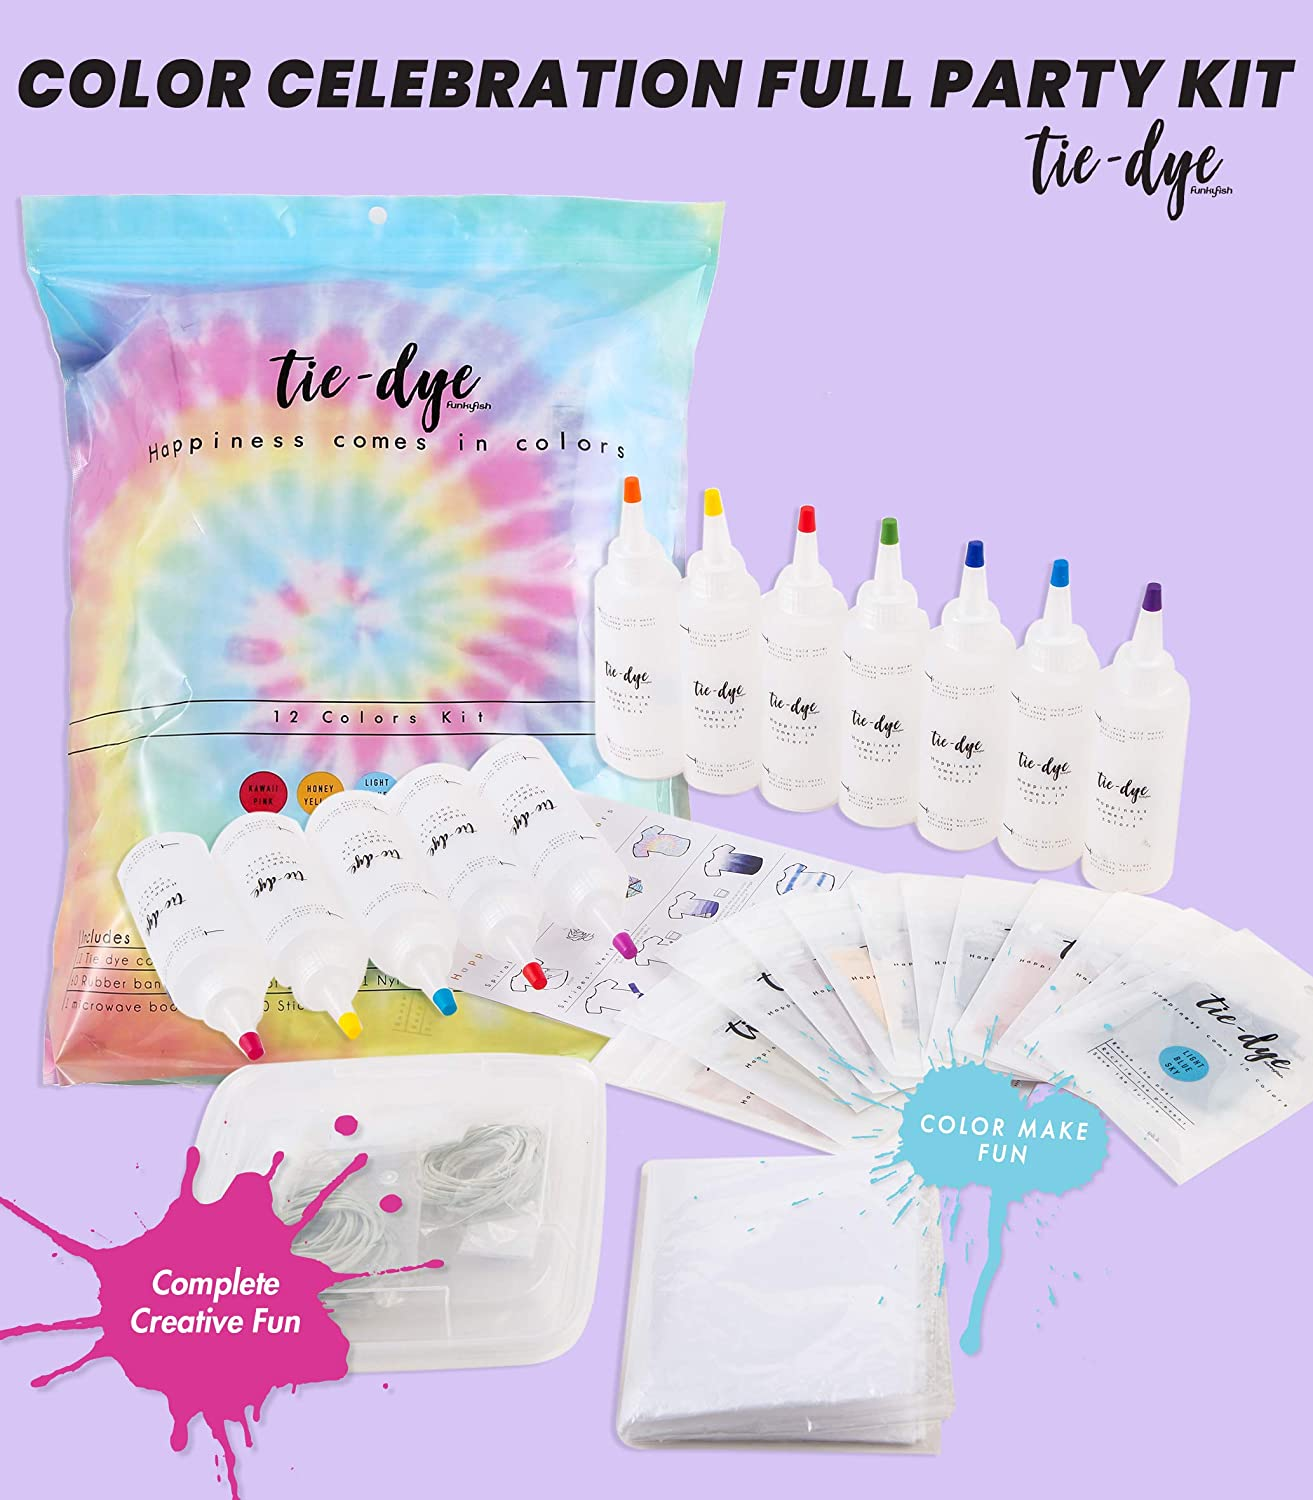 Fabric dye for Clothes with All Essentials Included Safe and Easy to use. 12 Color Party Tie Dye Kit Perfect Tie Dye Set with All tie dye Techniques and Inspiration